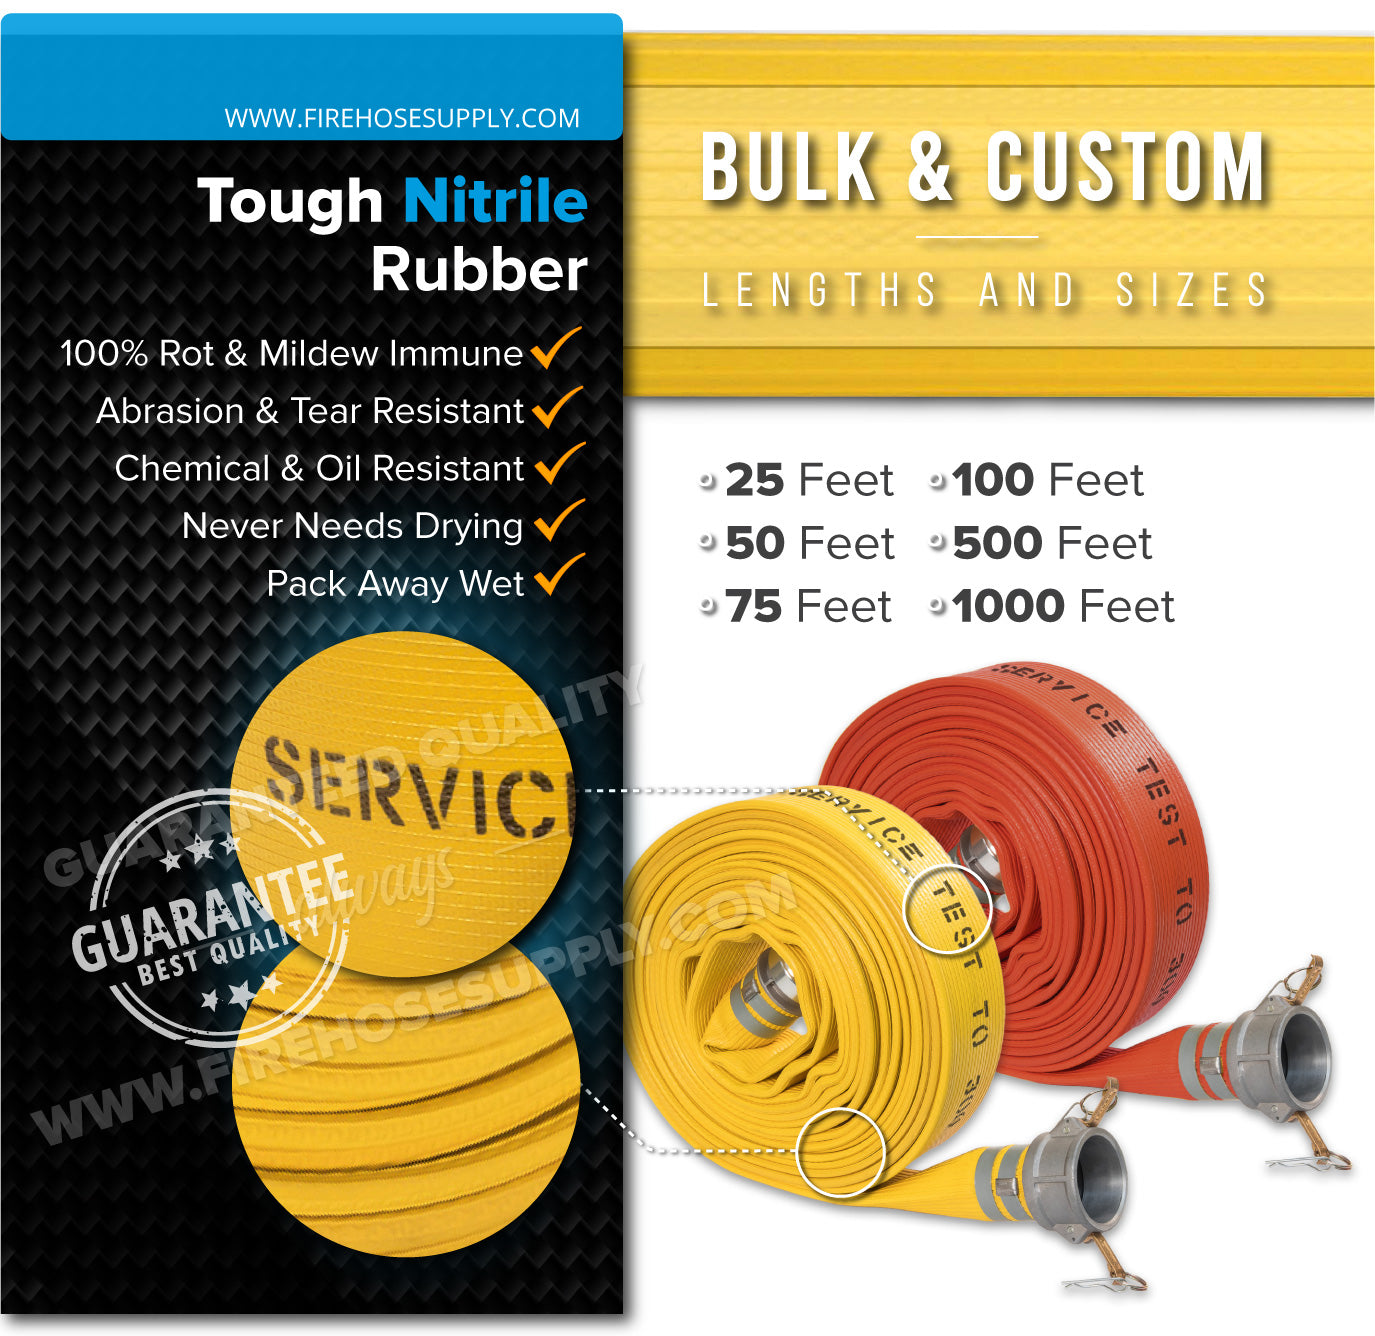 1.5 Inch Camlock Quick Connect Fire Hose Rubber Materials